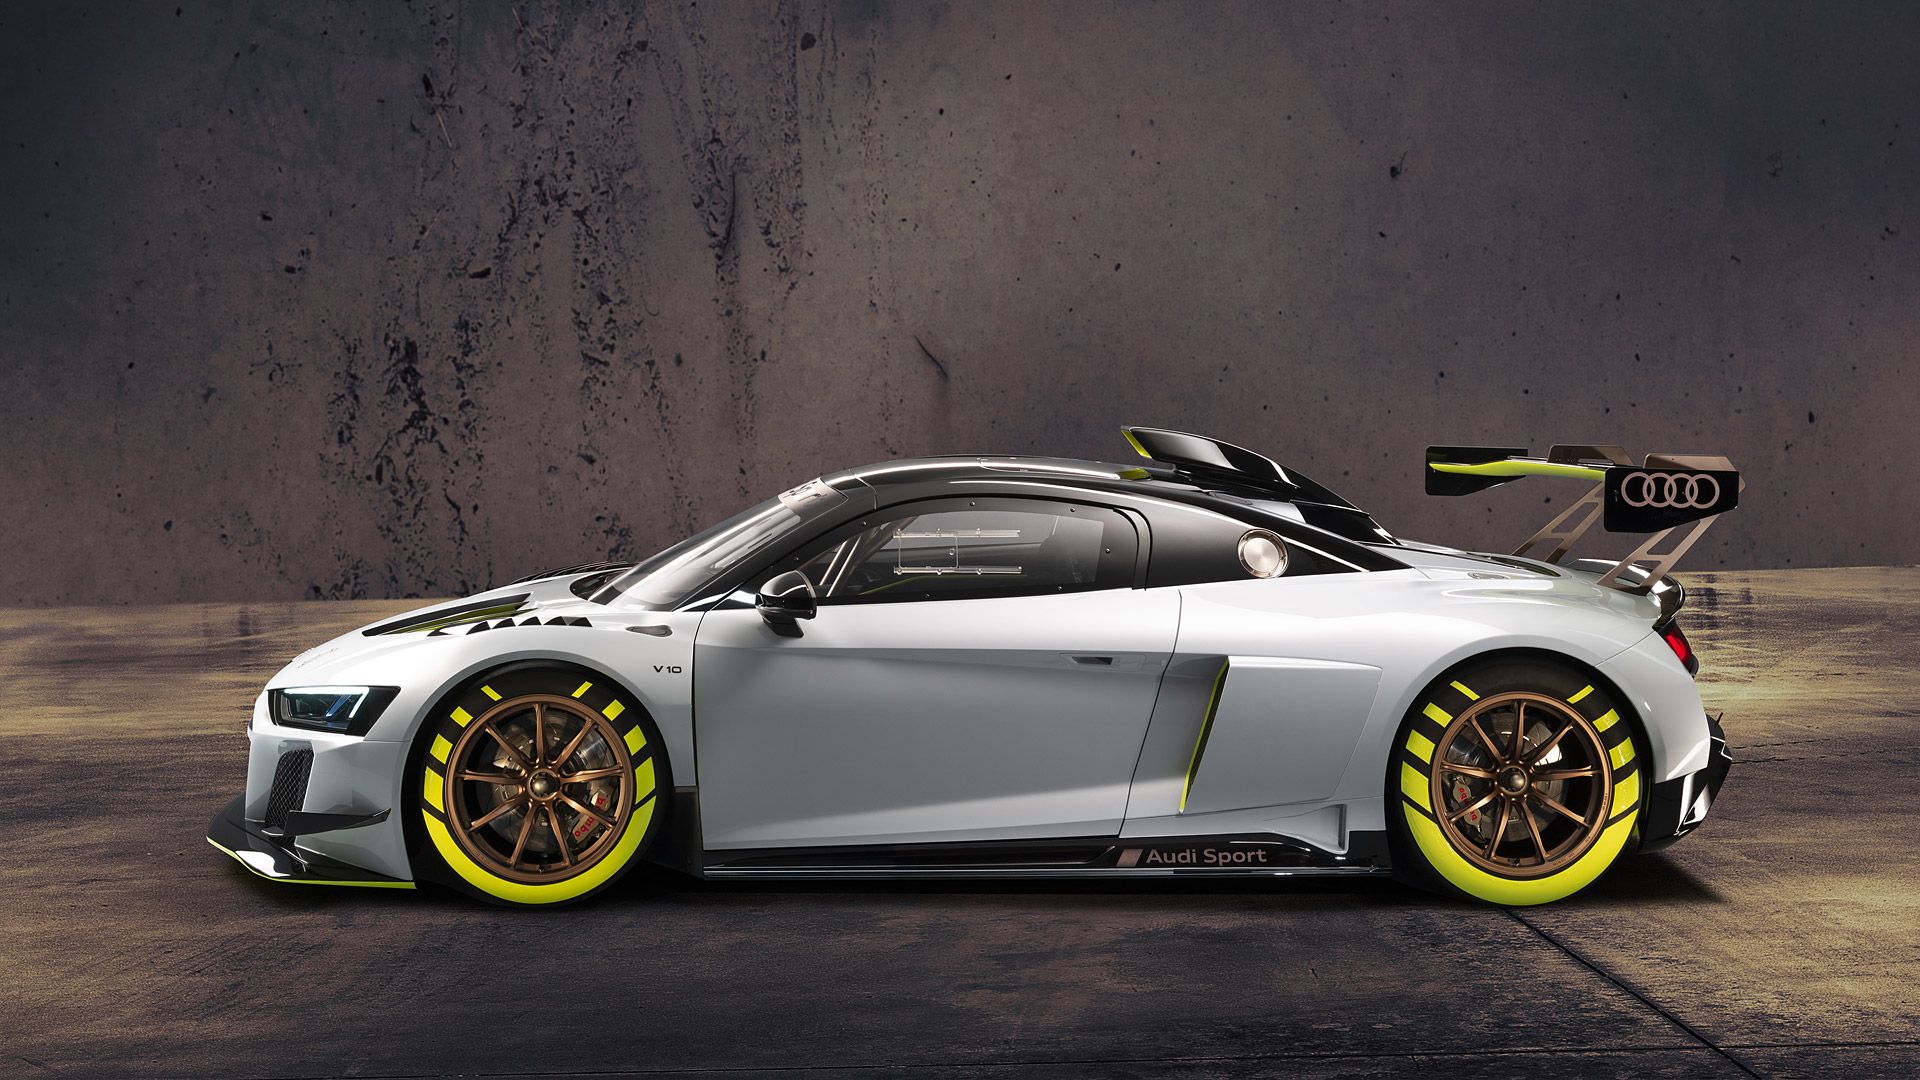 Free Download 2020 Audi R8 LMS GT2 Wallpapers Specs Videos